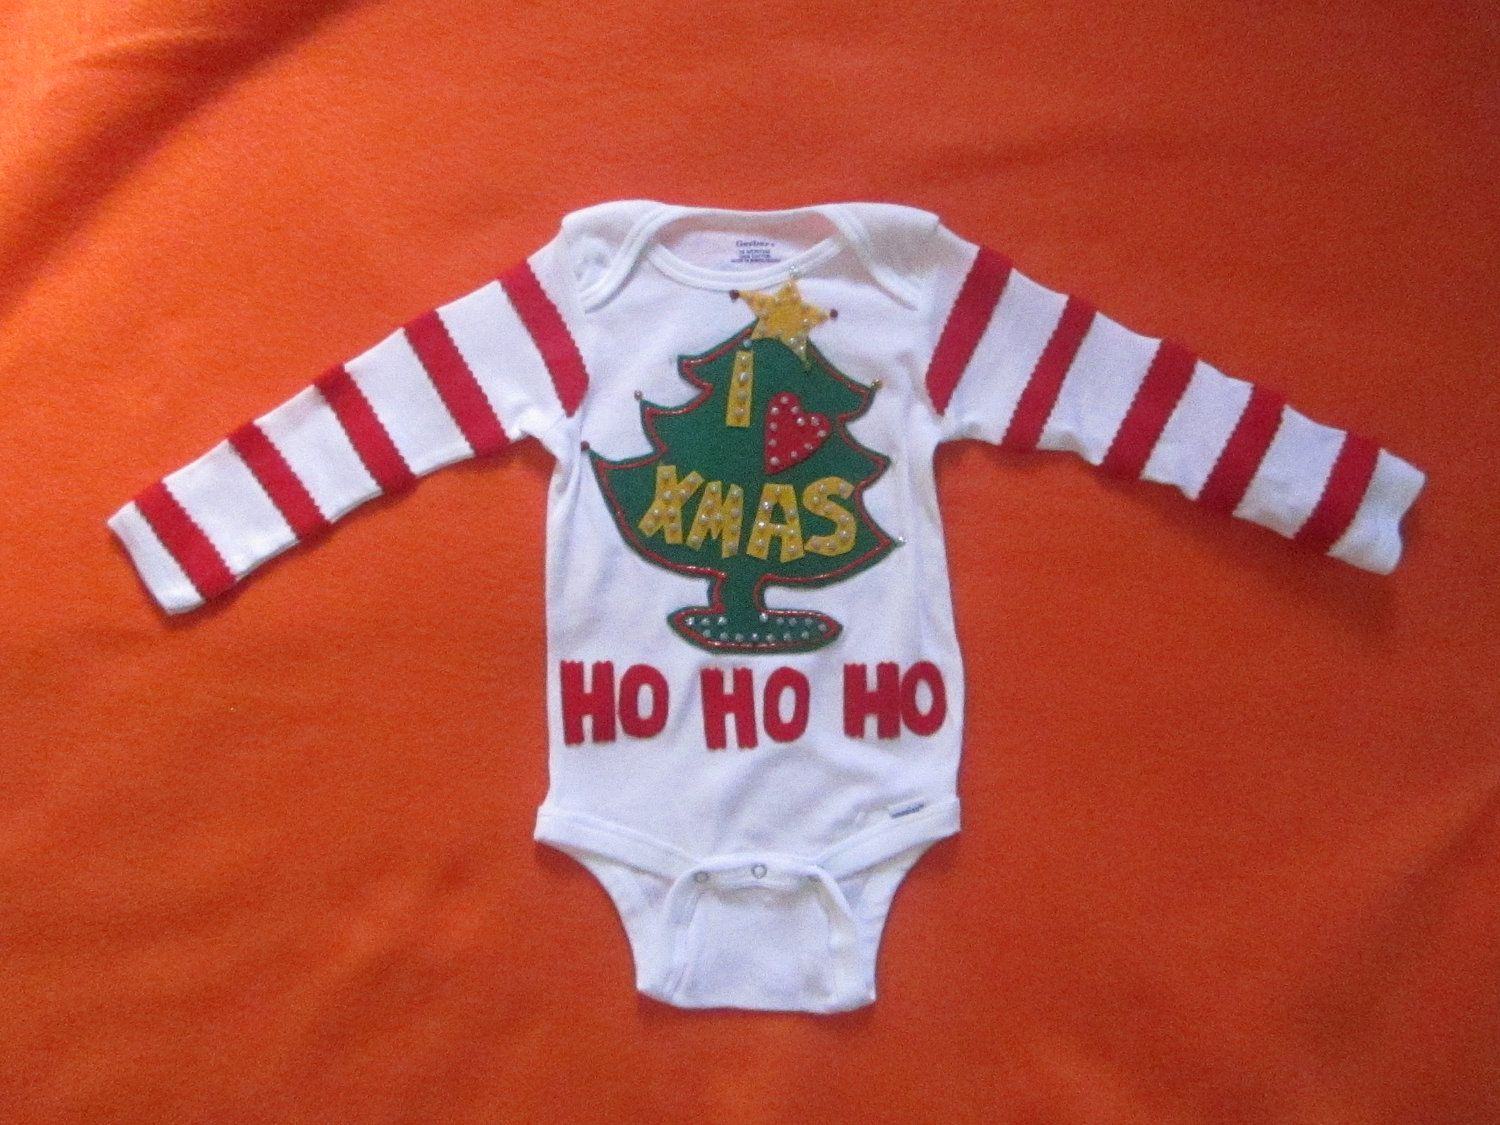 The Grinch Baby Ugly Christmas Sweater Photo Prop By Motherfrakers